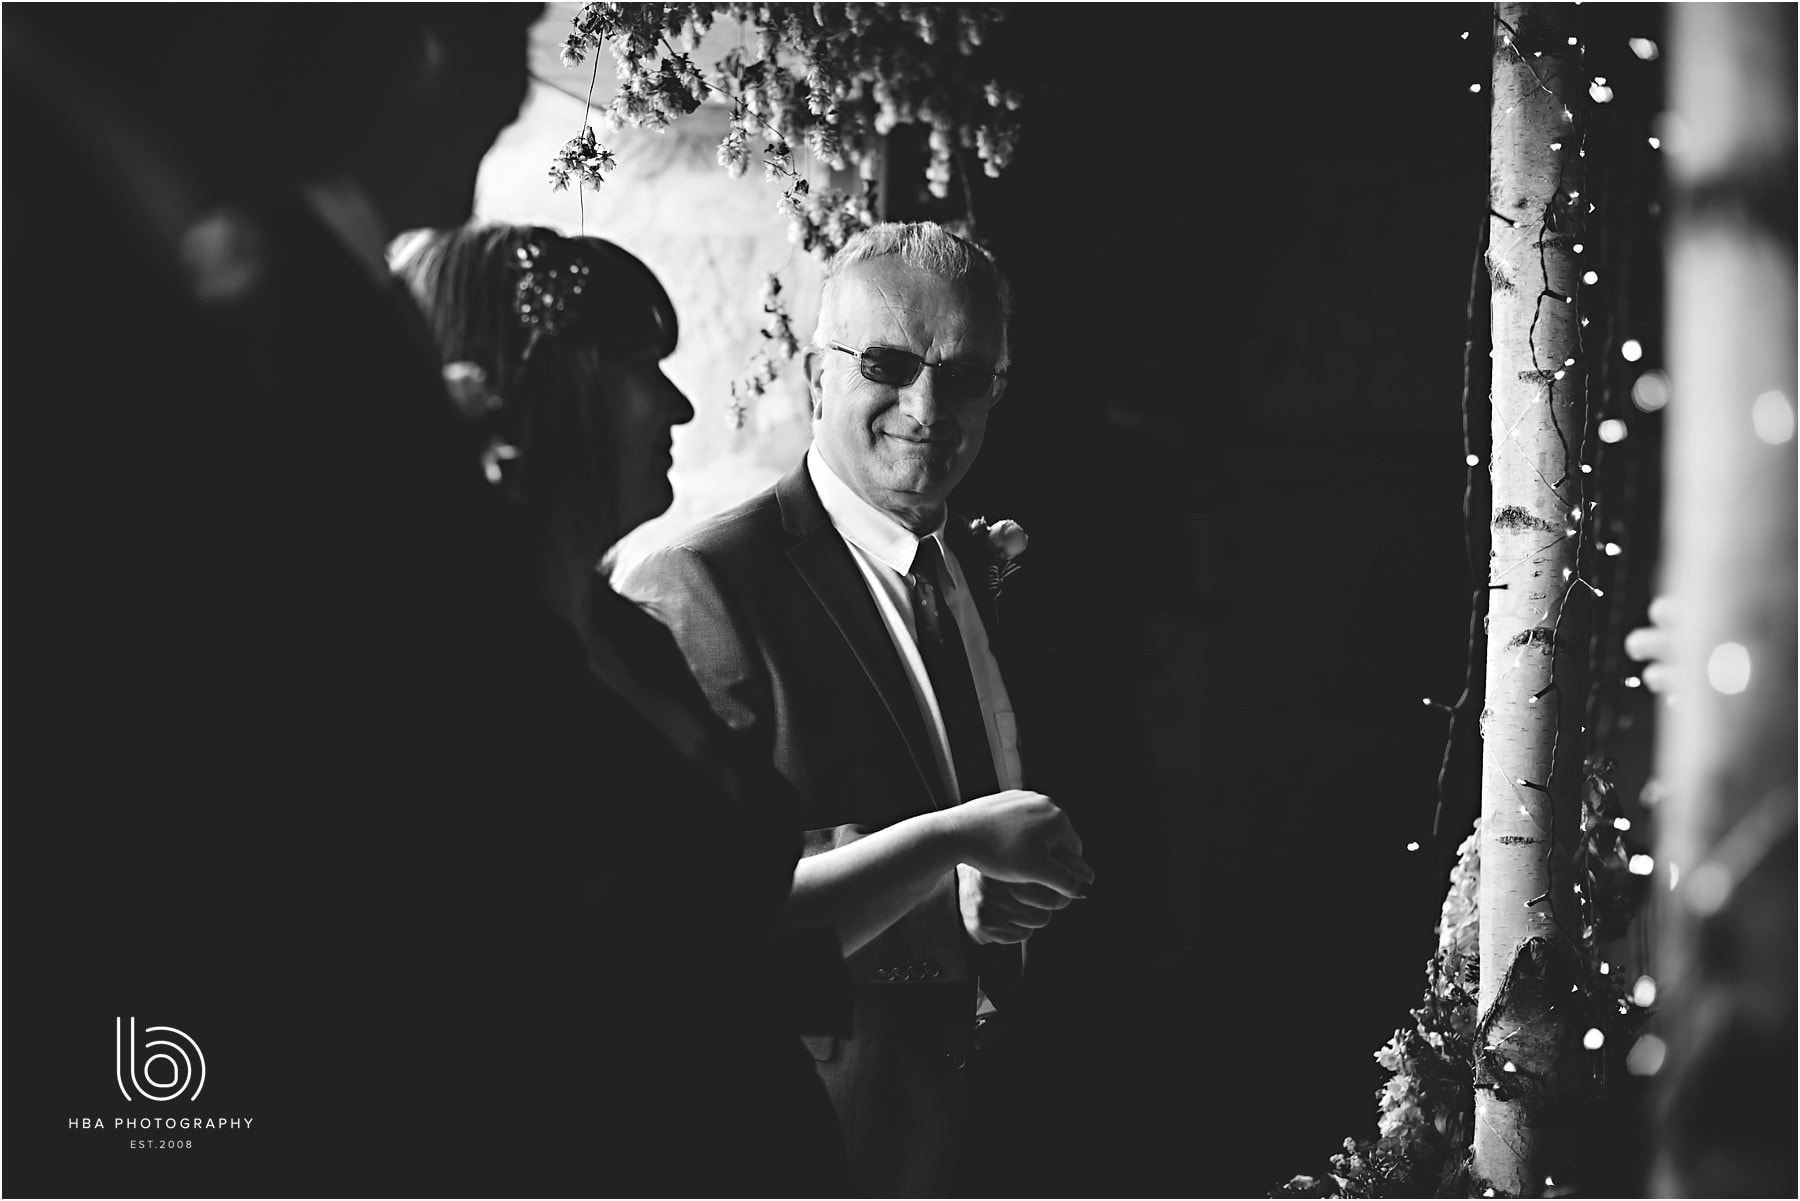 the father of the bride during the cermony